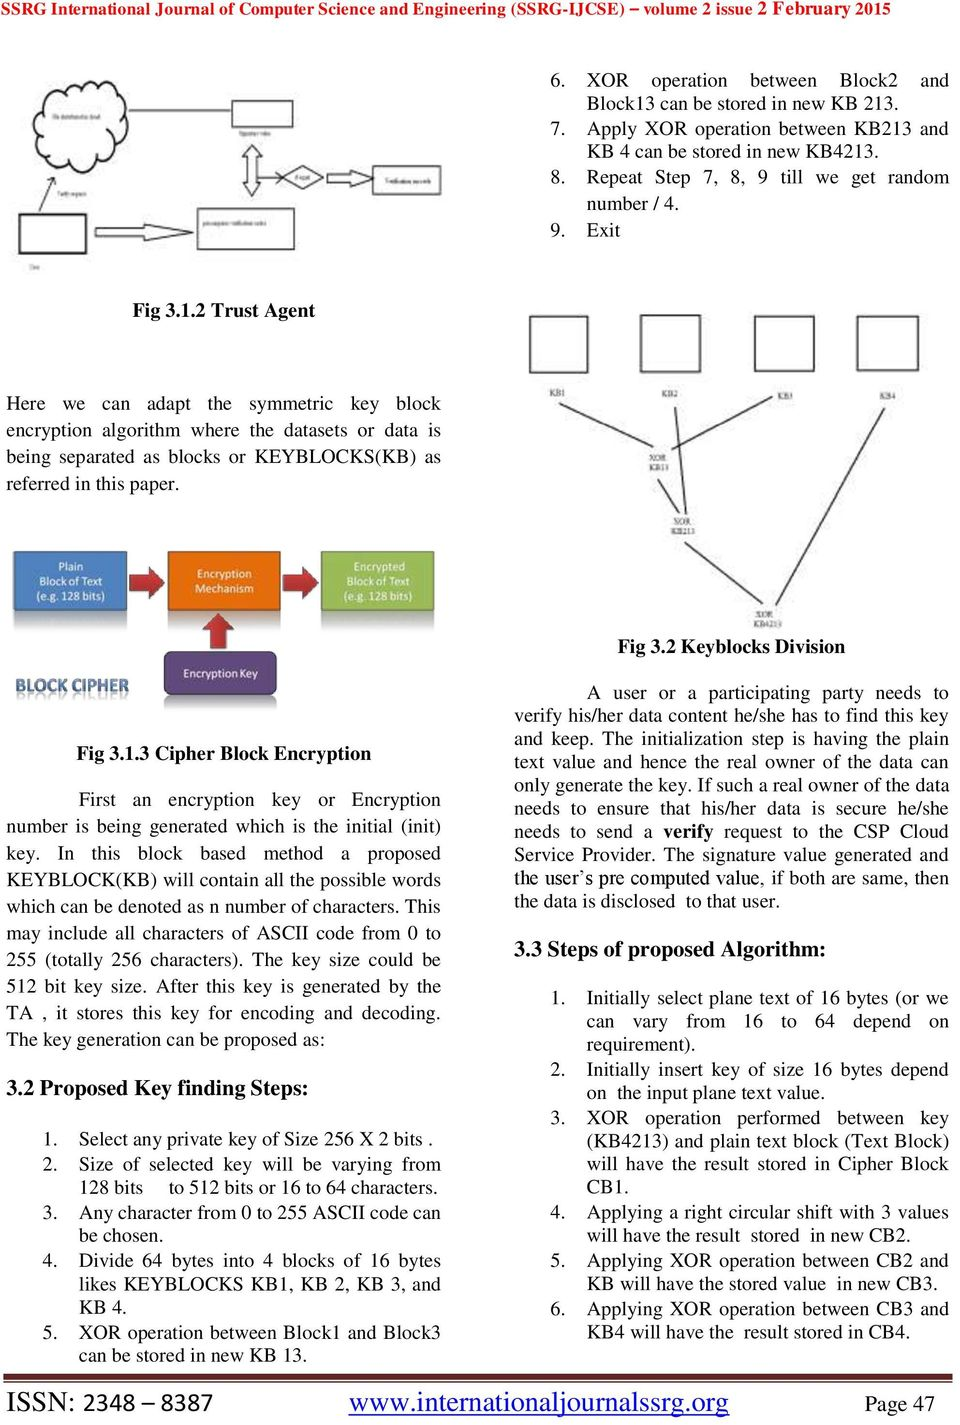 2 Trust Agent Here we can adapt the symmetric key block encryption algorithm where the datasets or data is being separated as blocks or KEYBLOCKS(KB) as referred in this paper. Fig 3.